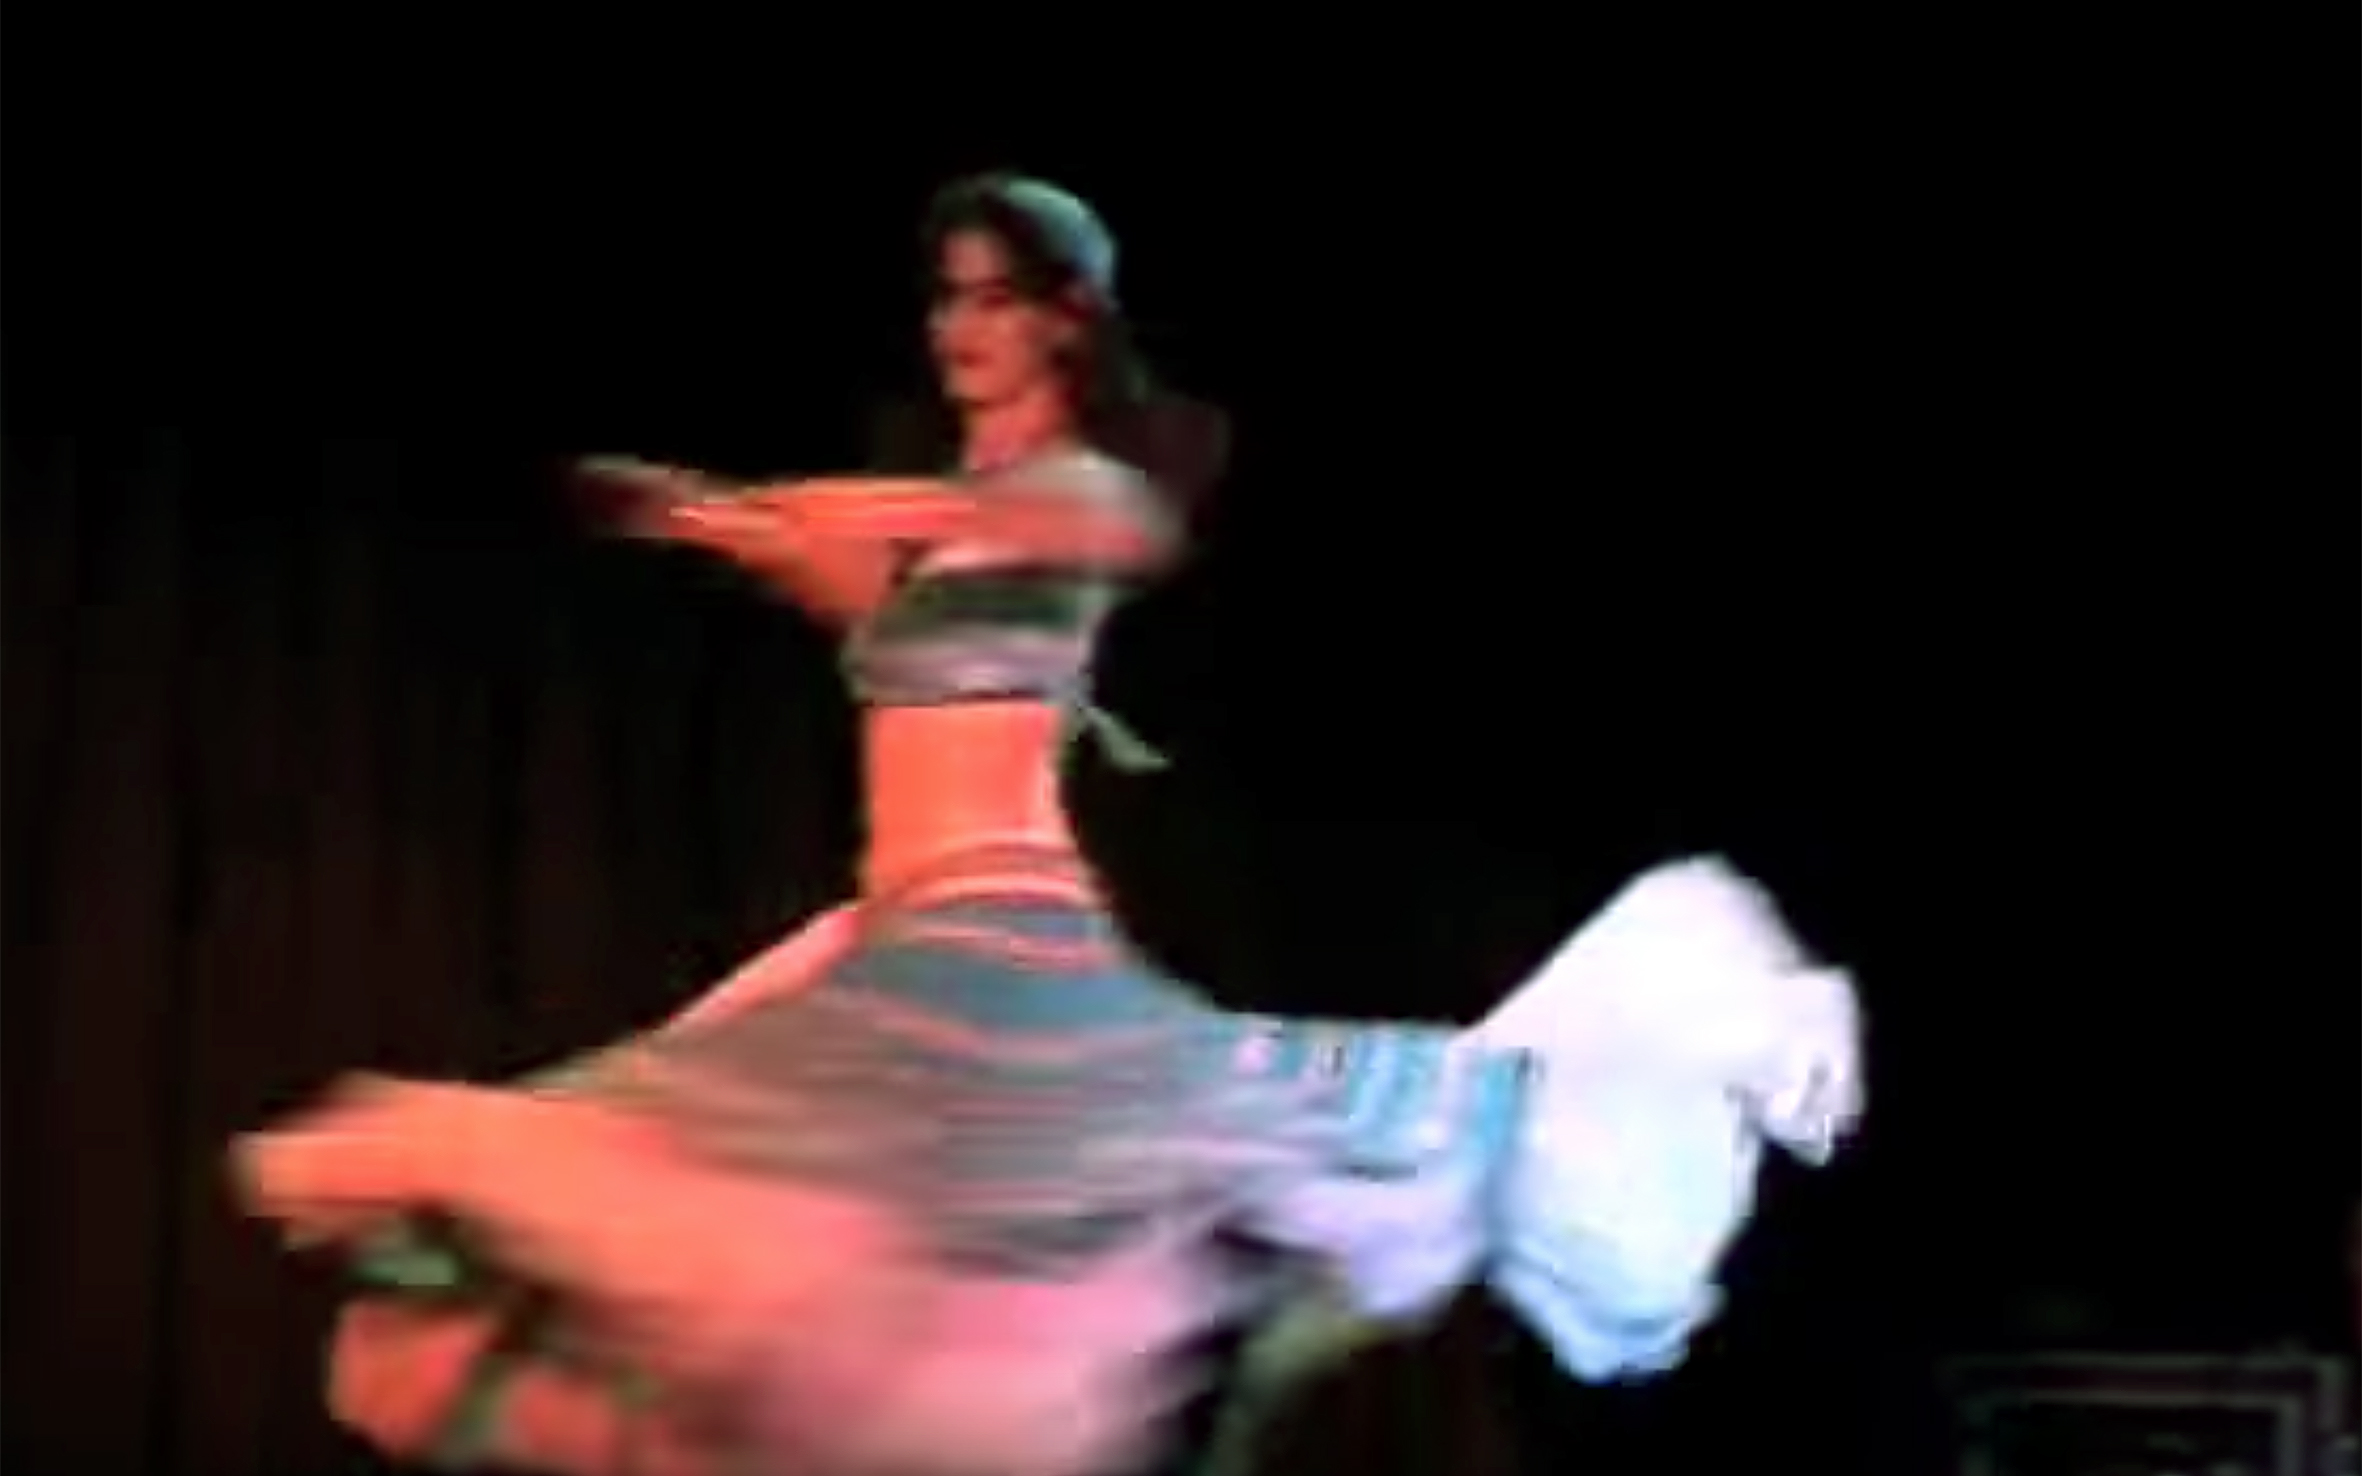 461.Karsilamas / Turkey - Karsilamas is a folk dance spread all over Northwest Turkey and carried to Greece by Greek refugees. The term